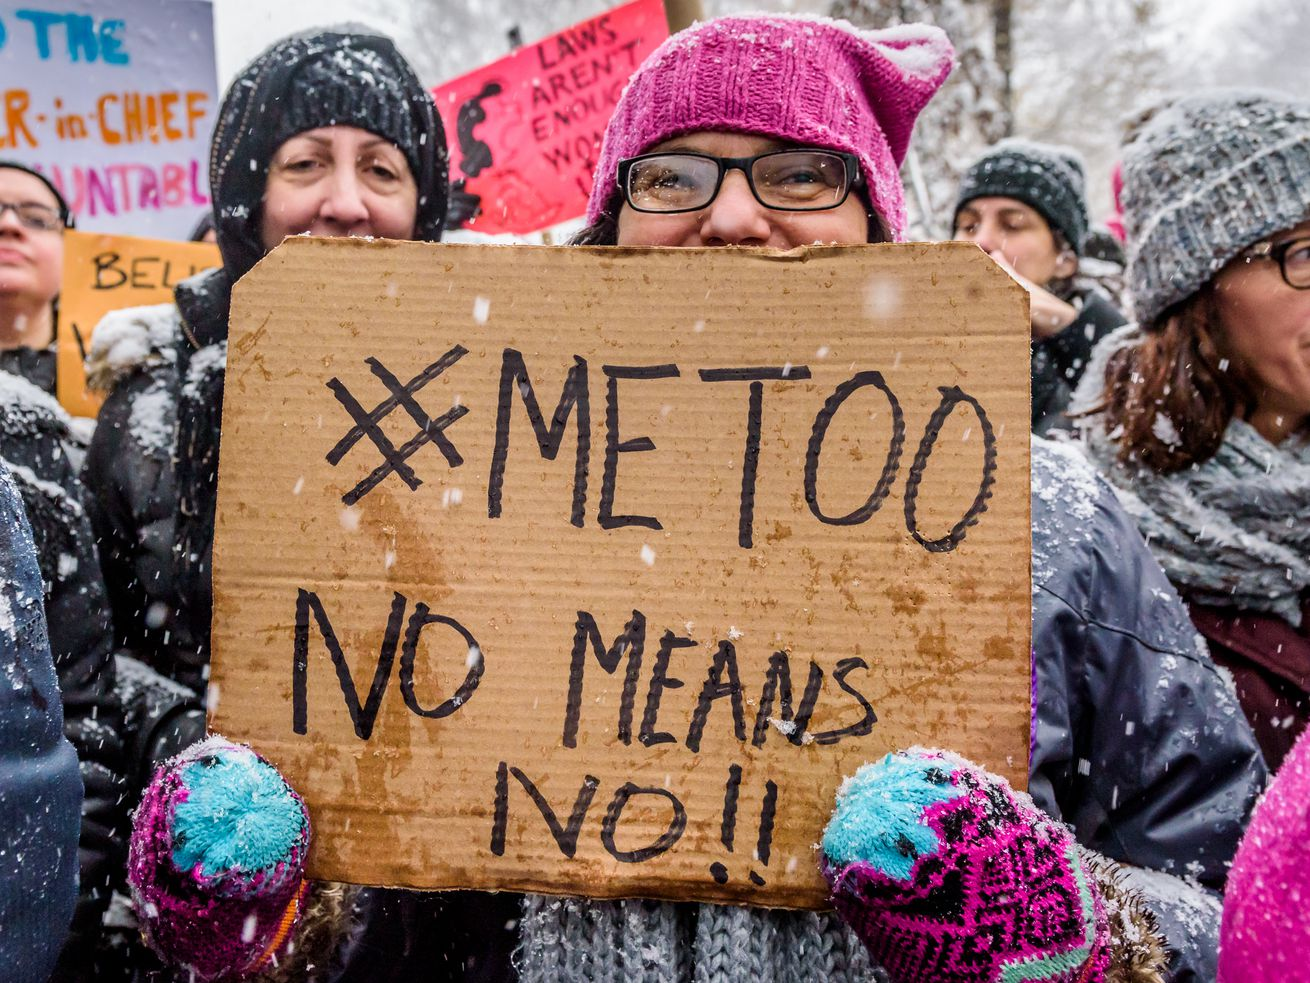 Protesters at a #MeToo rally in New York City in December 2017.